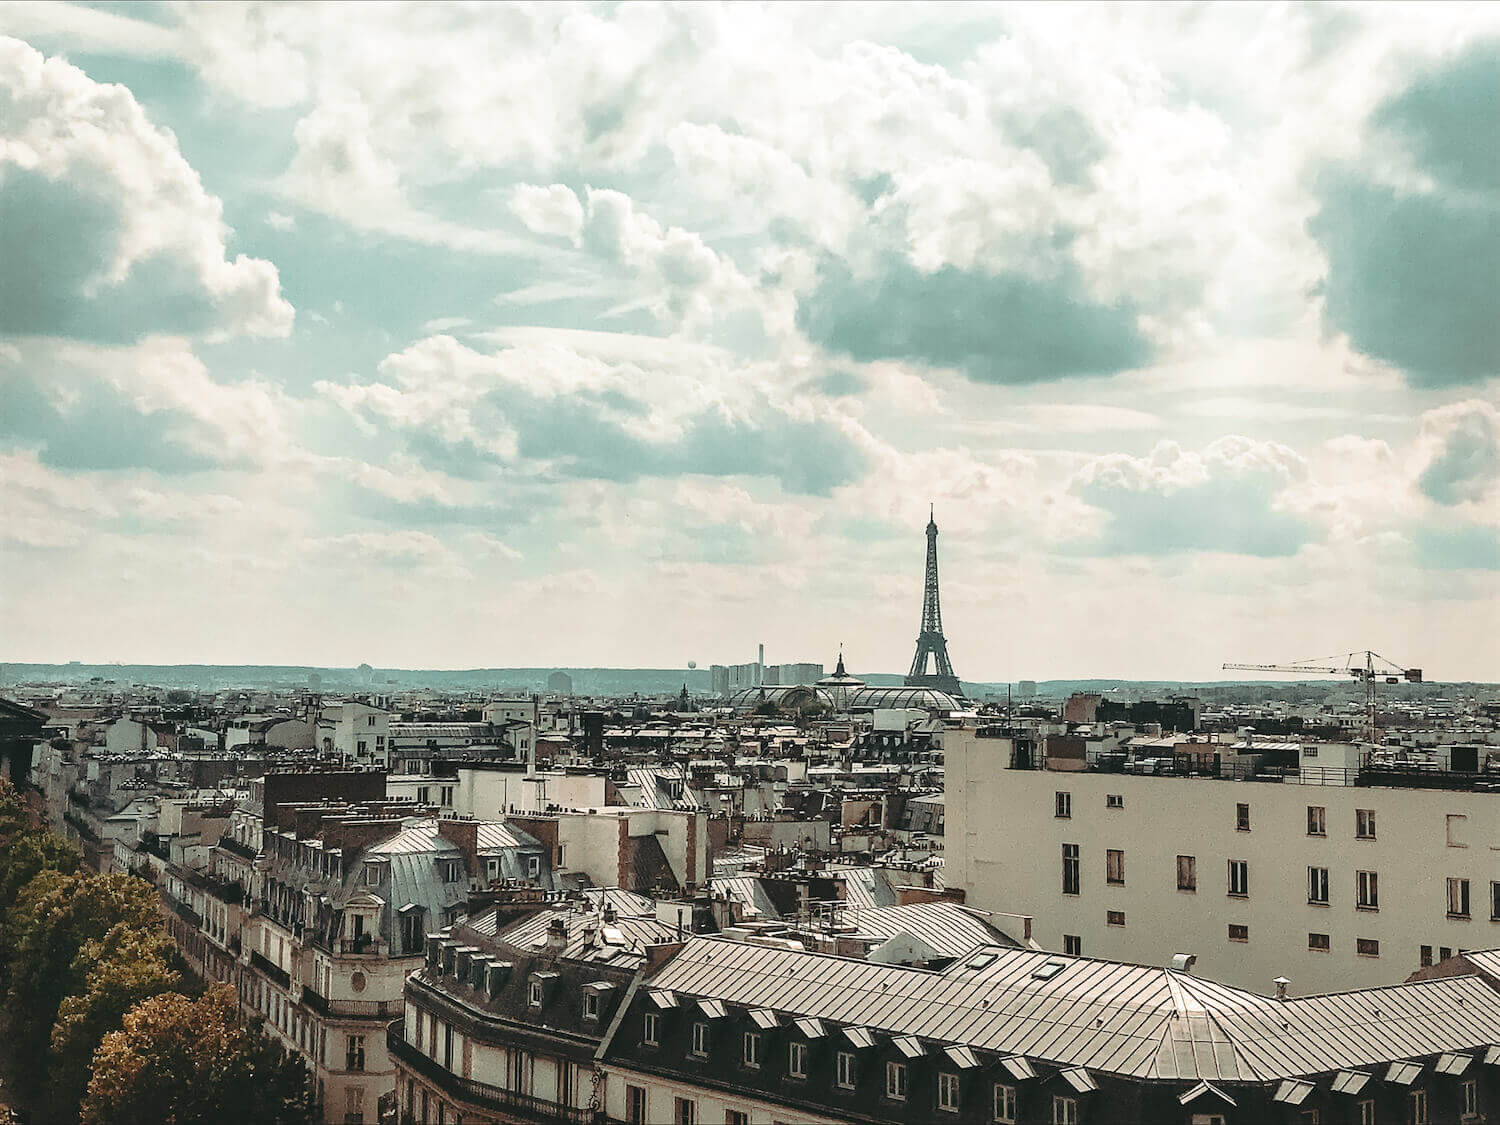 Views of Paris rooftops and the Eiffel Tower from Perruche